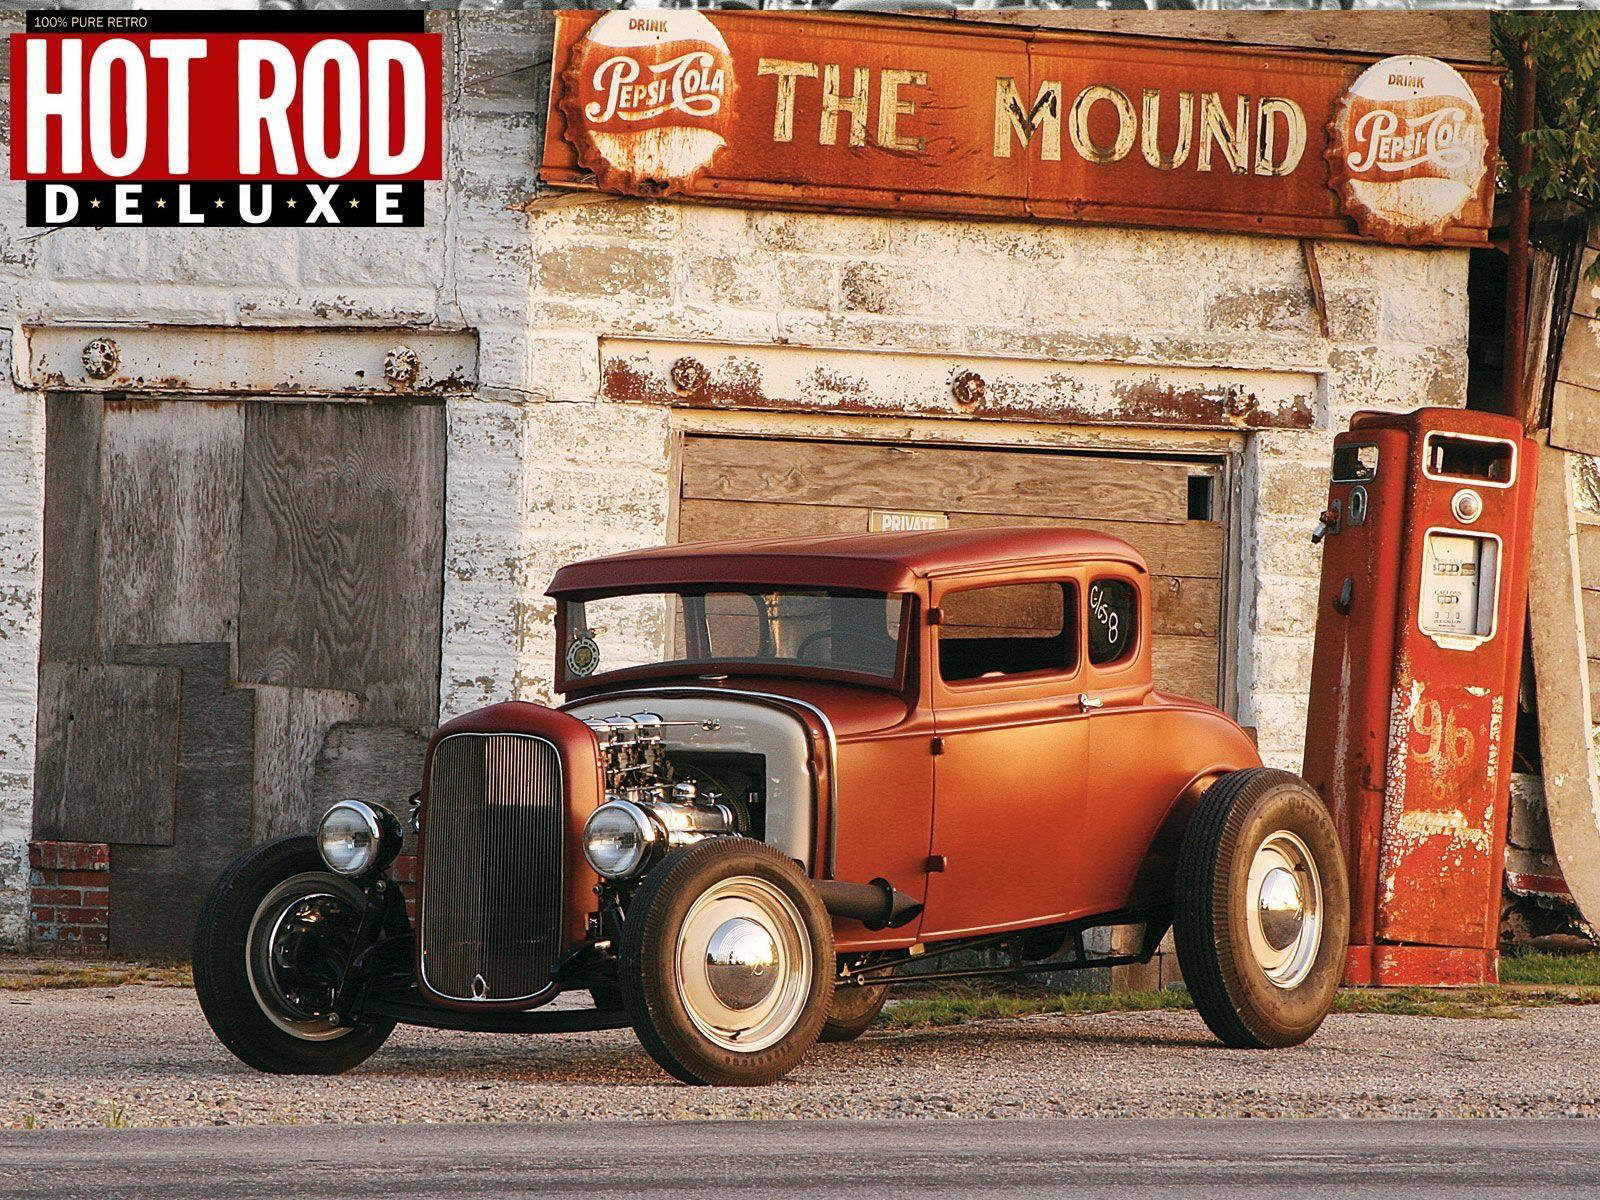 00477 HOT ROD 1932 FORD 5 WINDOW COUPE Poster Laminated | eBay